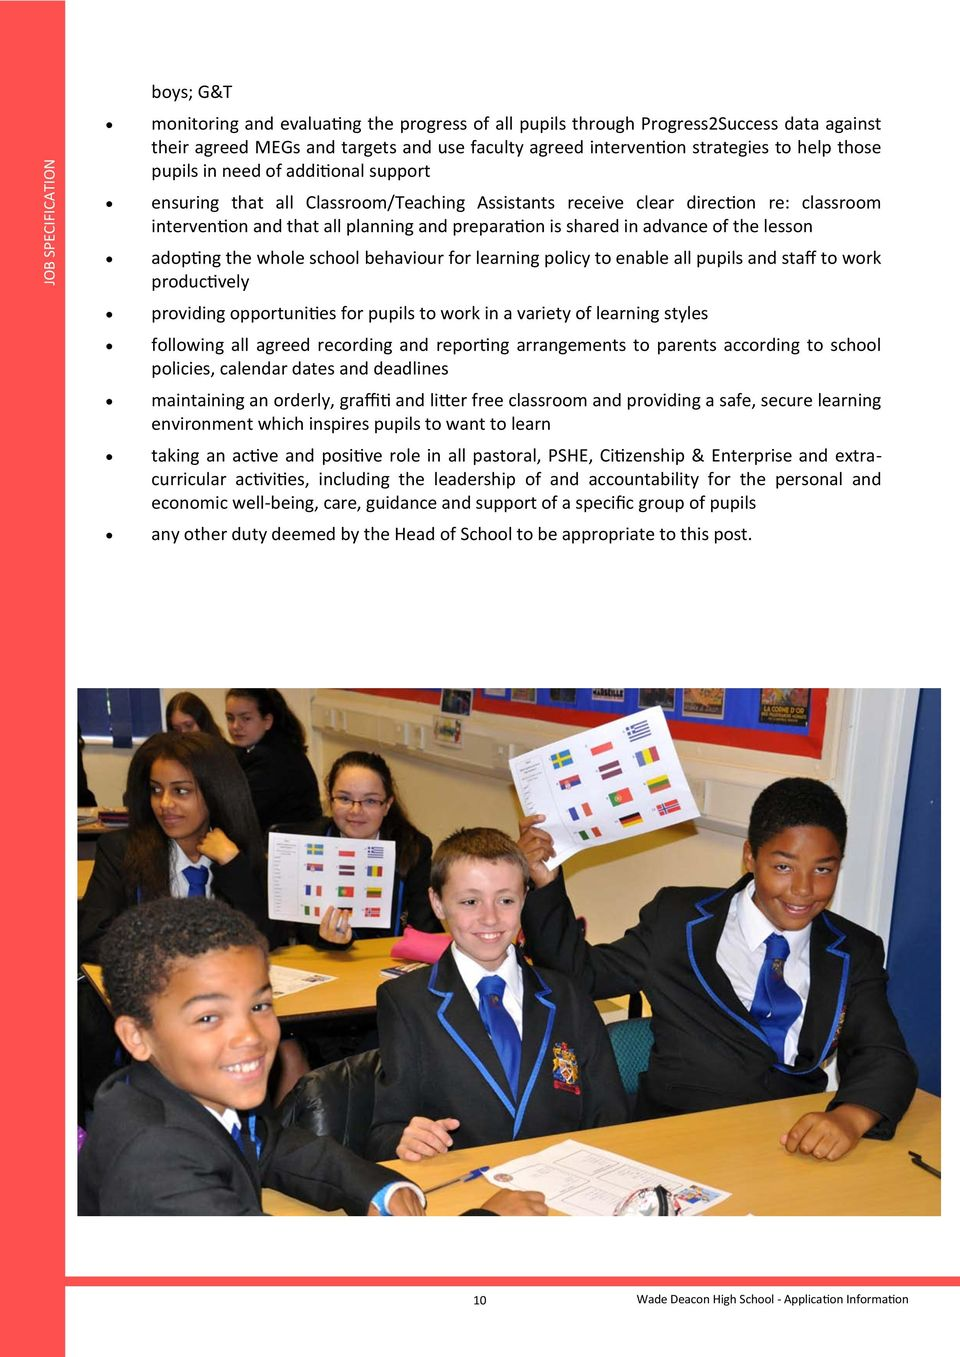 advance of the lesson adopting the whole school behaviour for learning policy to enable all pupils and staff to work productively providing opportunities for pupils to work in a variety of learning